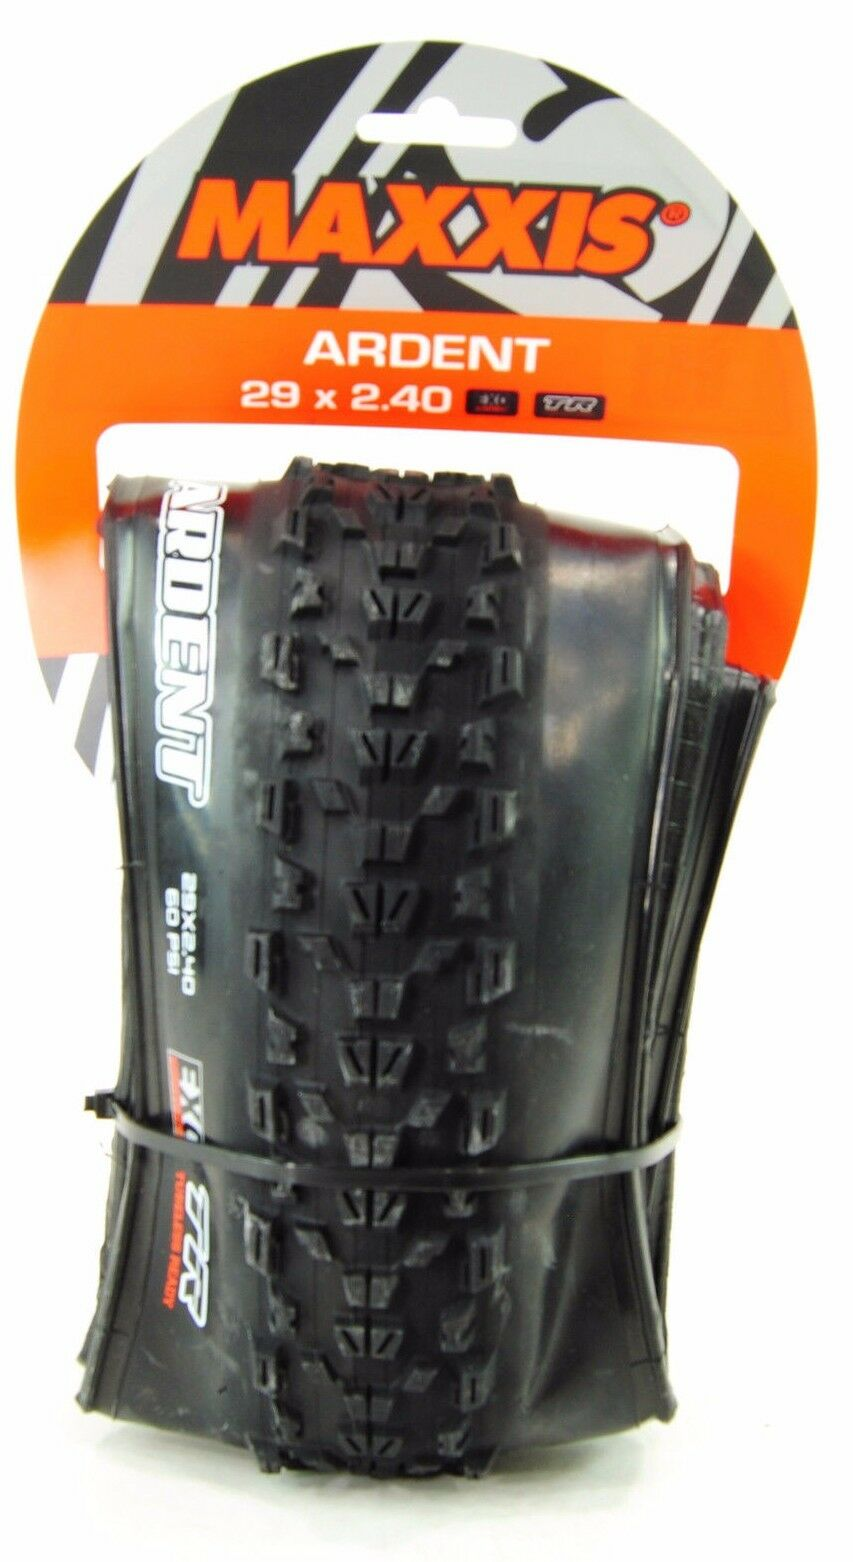 Maxxis Ardent Mountain Bike Tire 29 x  2.40 Dual Compound Tubeless EXO Predection  simple and generous design